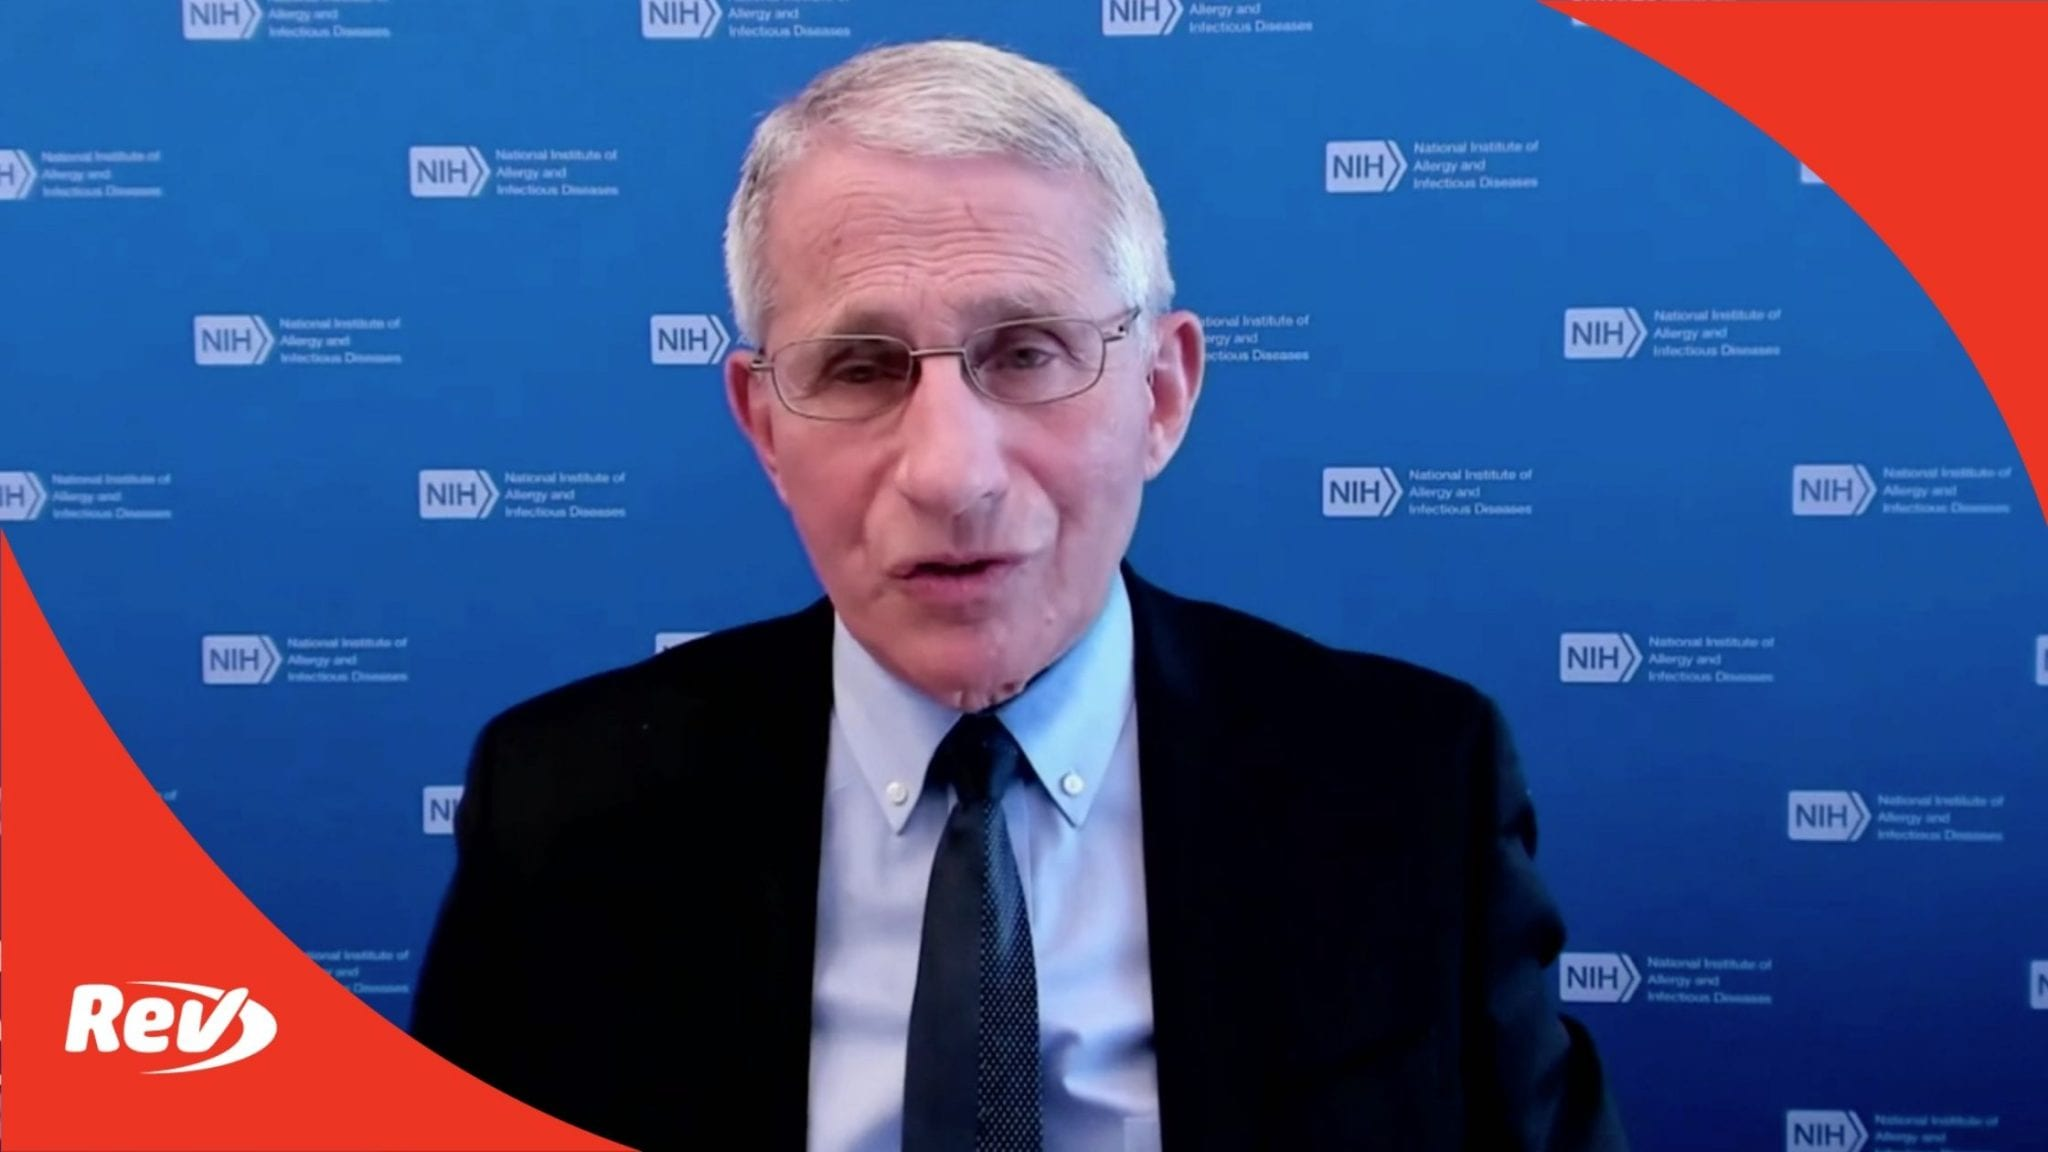 White House COVID-19 Task Force, Dr. Fauci Press Conference Transcript March 19